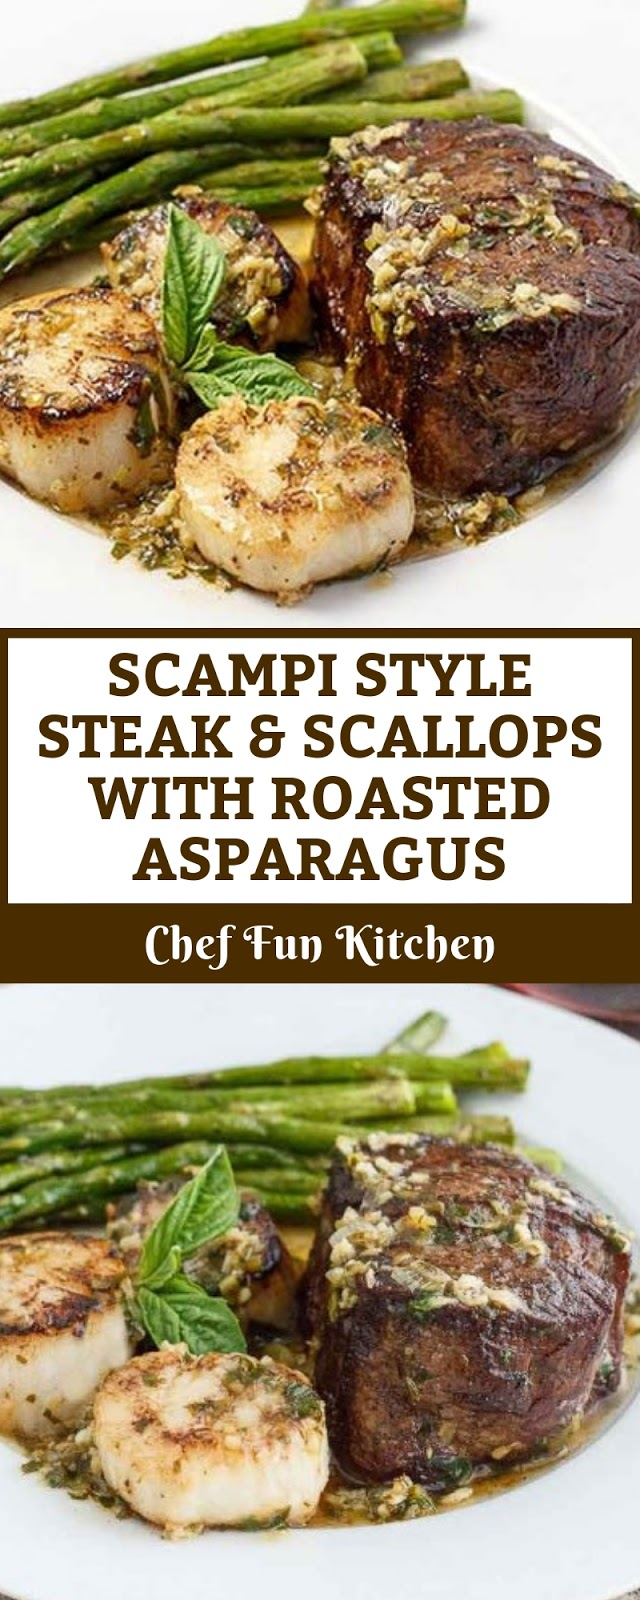 SCAMPI STYLE STEAK & SCALLOPS WITH ROASTED ASPARAGUS